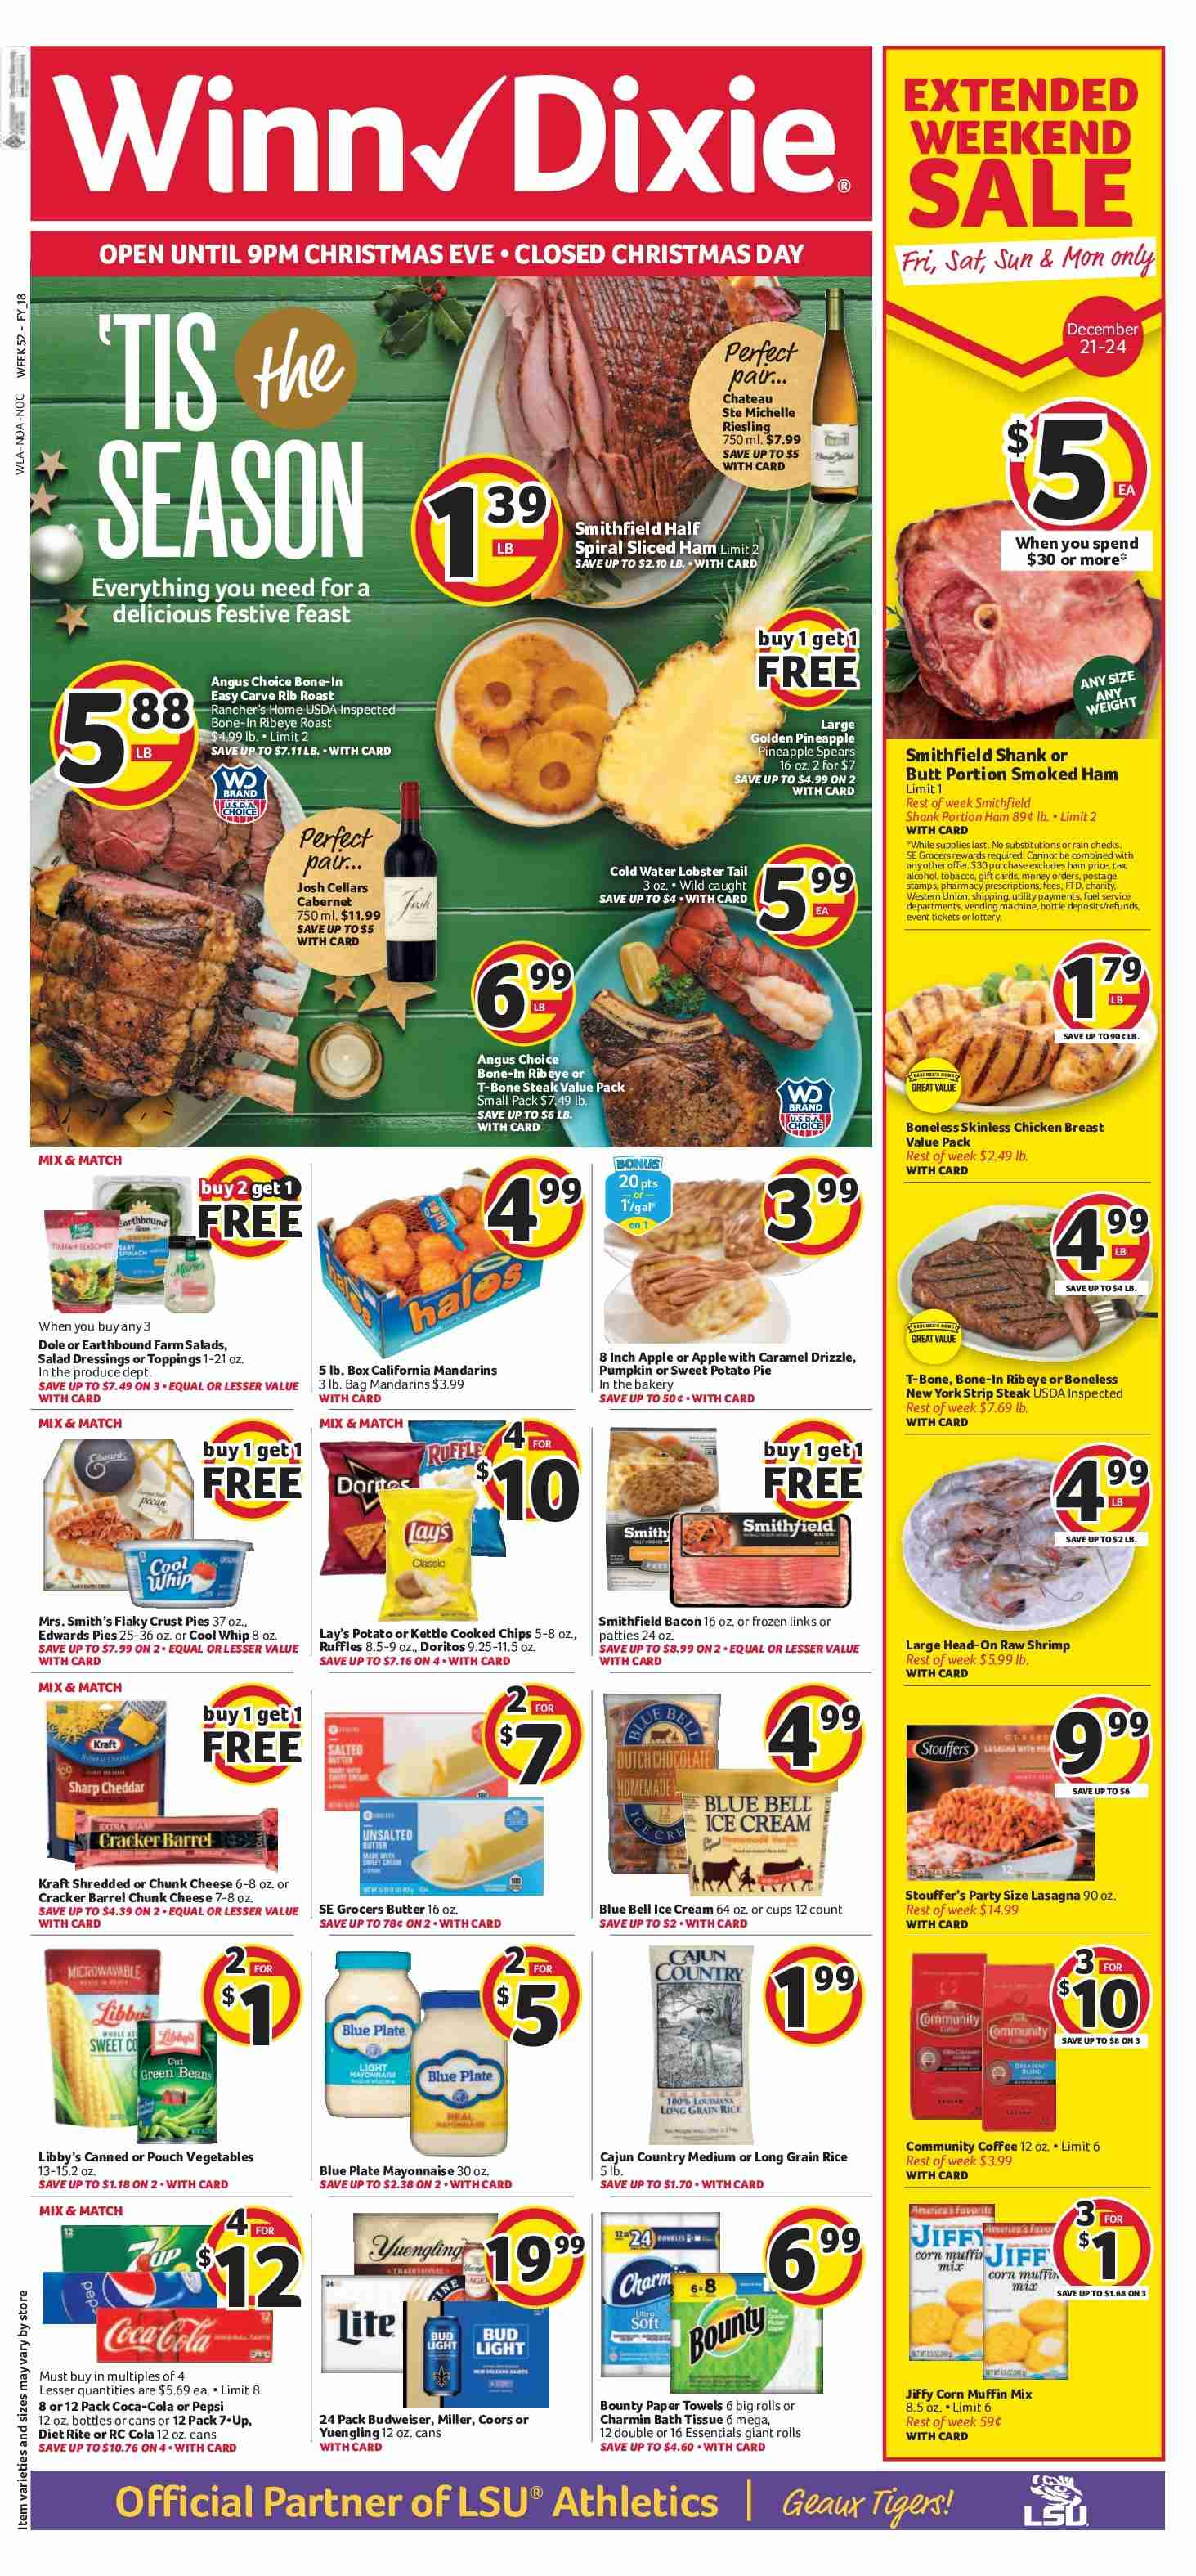 Winn Dixie Flyer  - 12.19.2018 - 12.24.2018. Page 1.